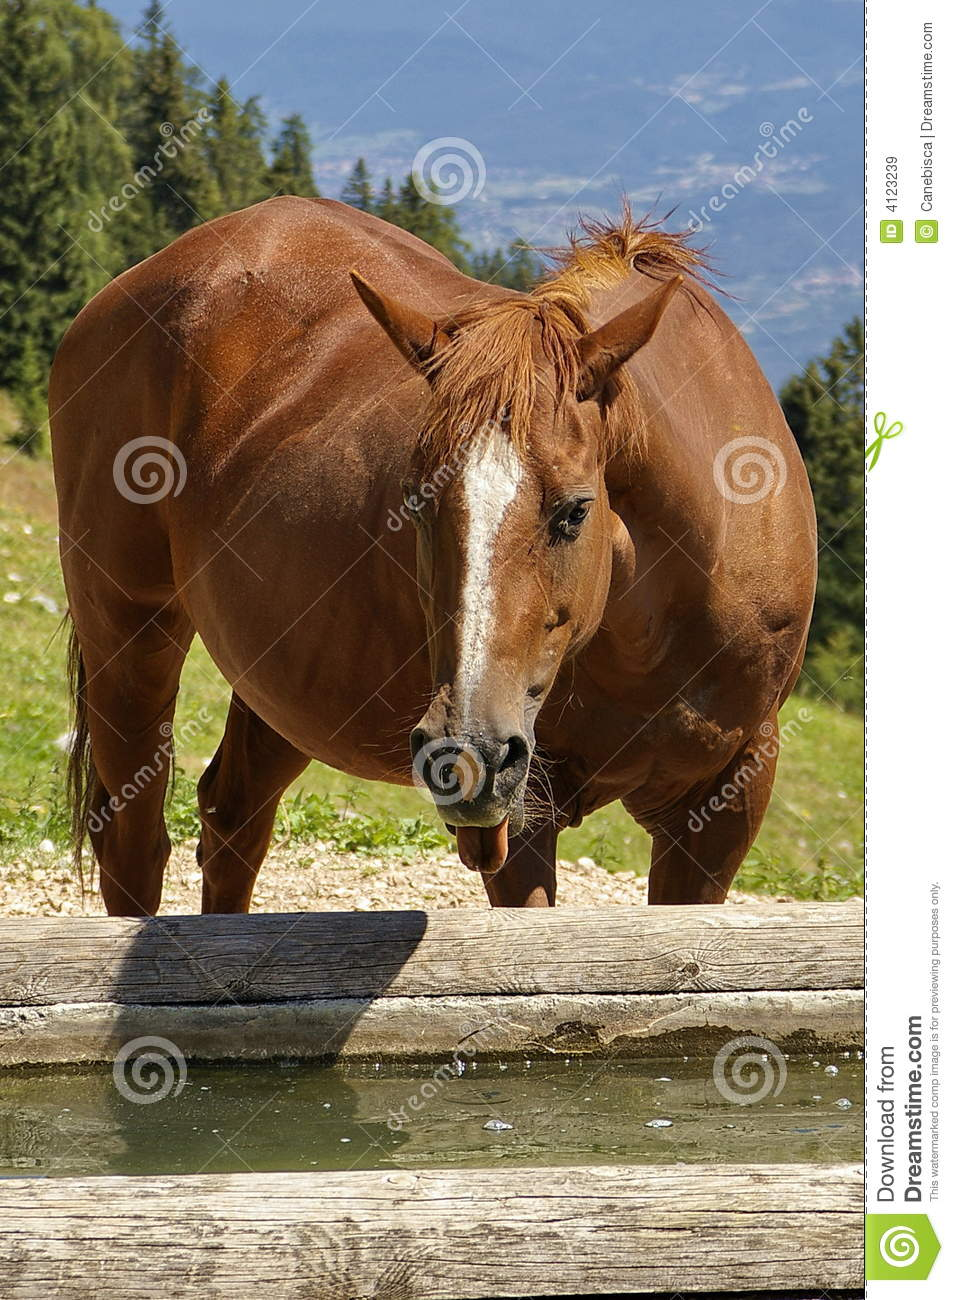 Funny Horse Royalty Free Stock Images - Image: 4123239